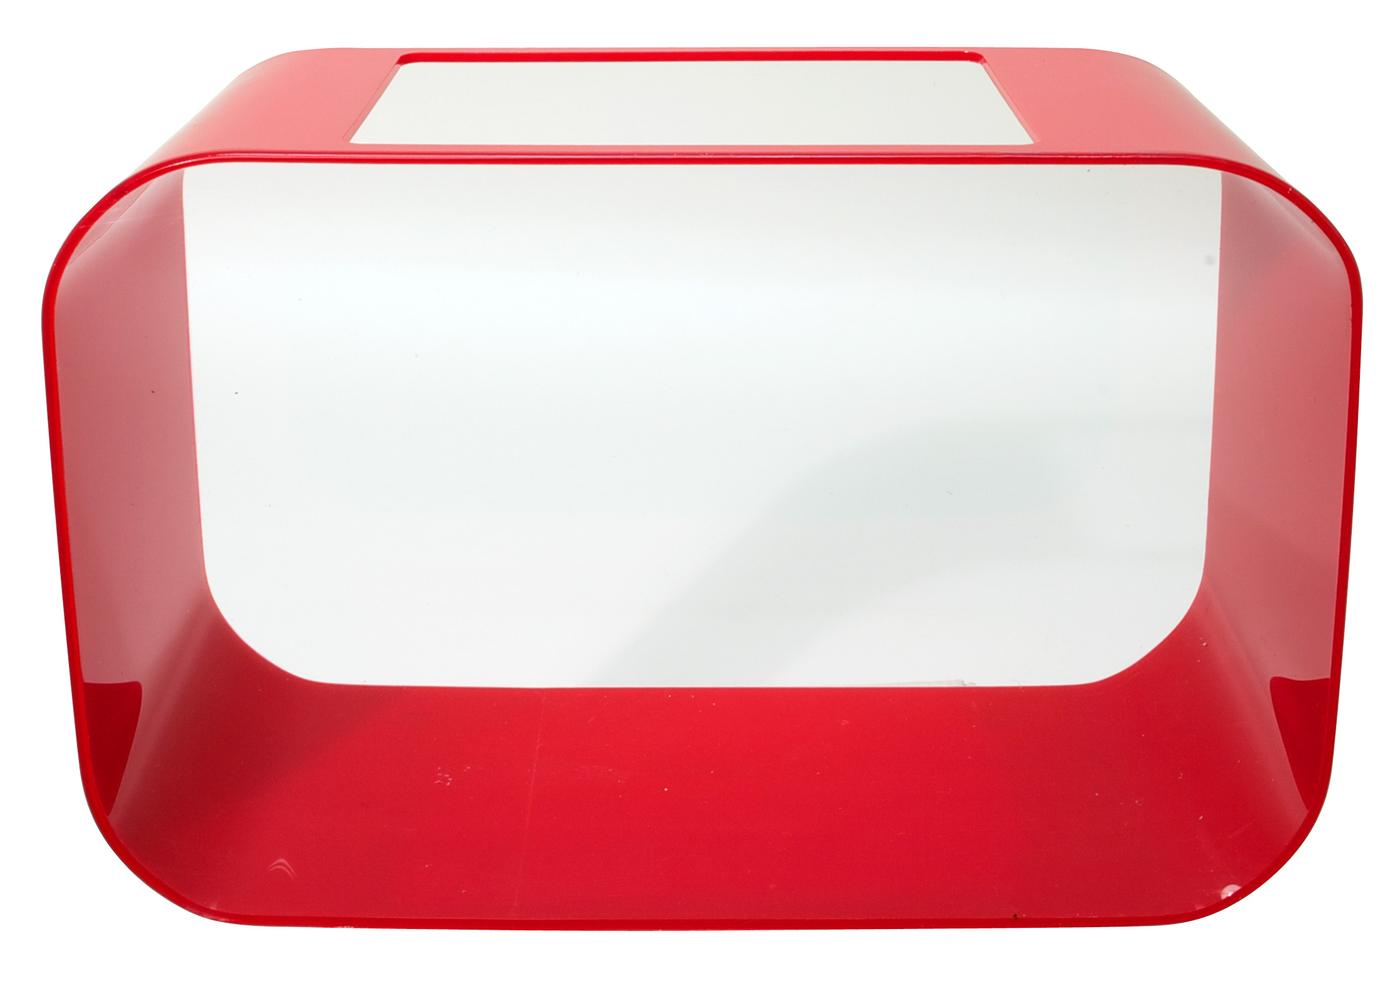 Betta House/Rectangular/Red, 2 gal